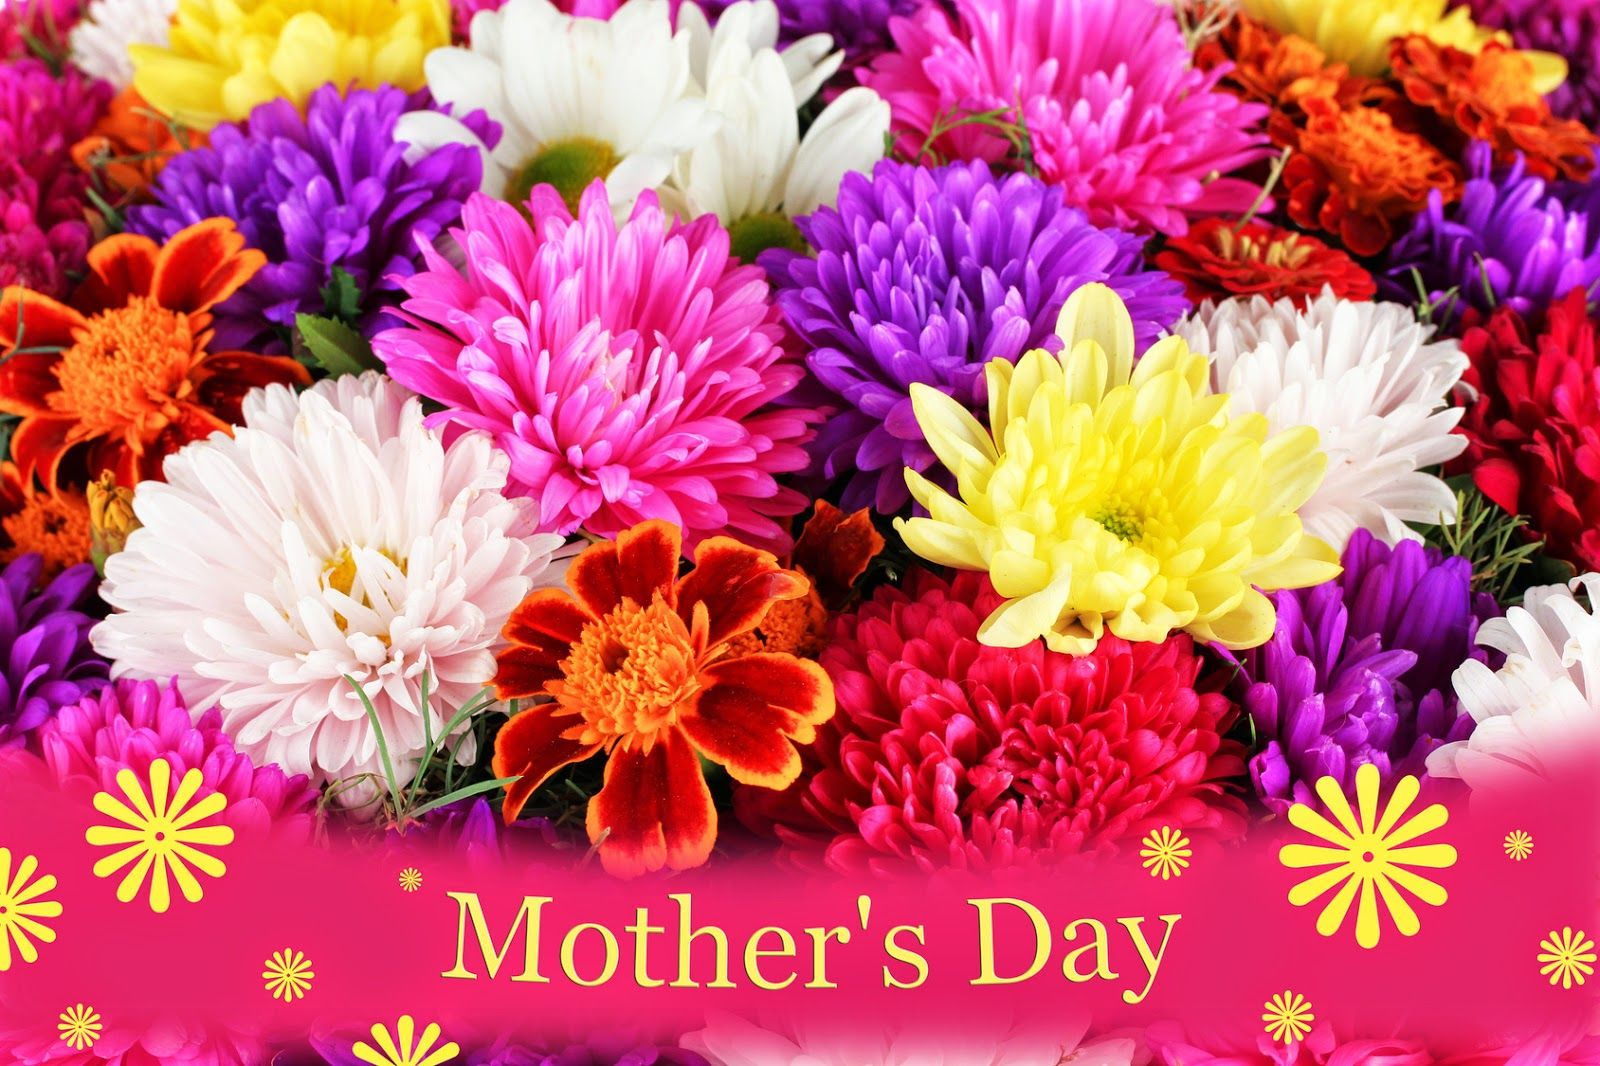 Happy mothers day poems free mothers day ecards happy mothers happy mothers day poems free mothers day ecards happy mothers day cards free mothers day beautiful people pinterest happy mothers kristyandbryce Gallery